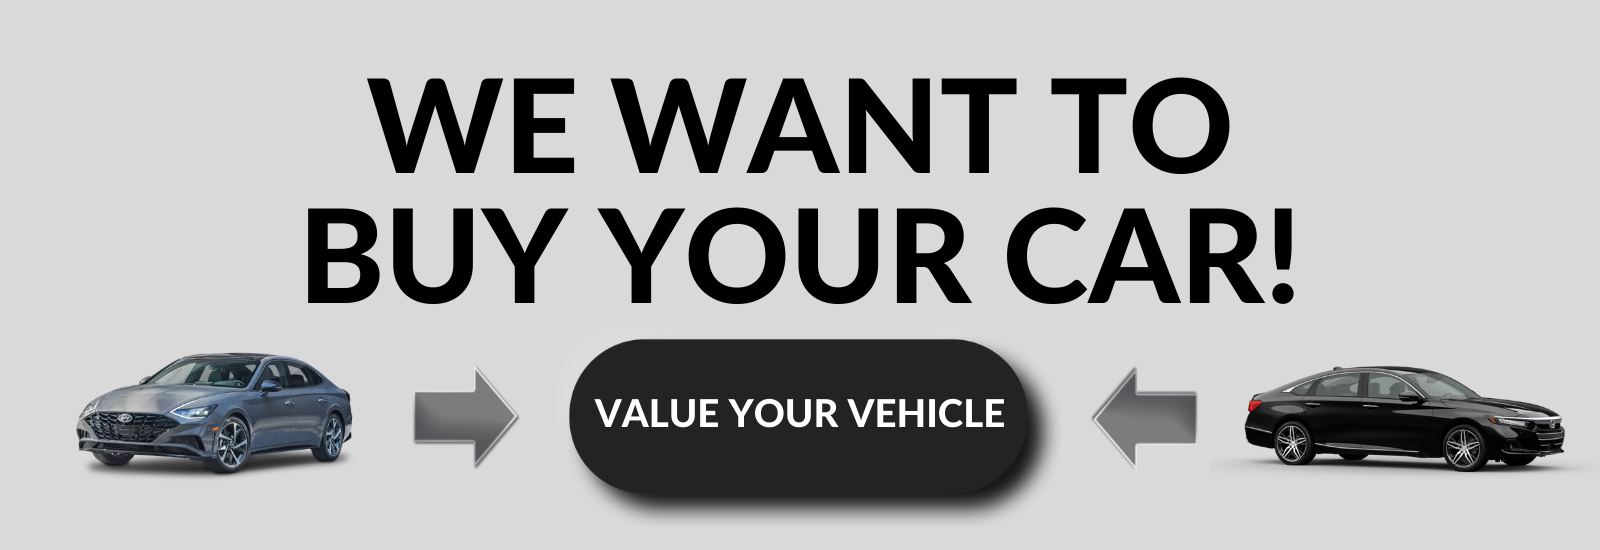 WE WANT TO BUY YOUR CAR! Westside auto Mall